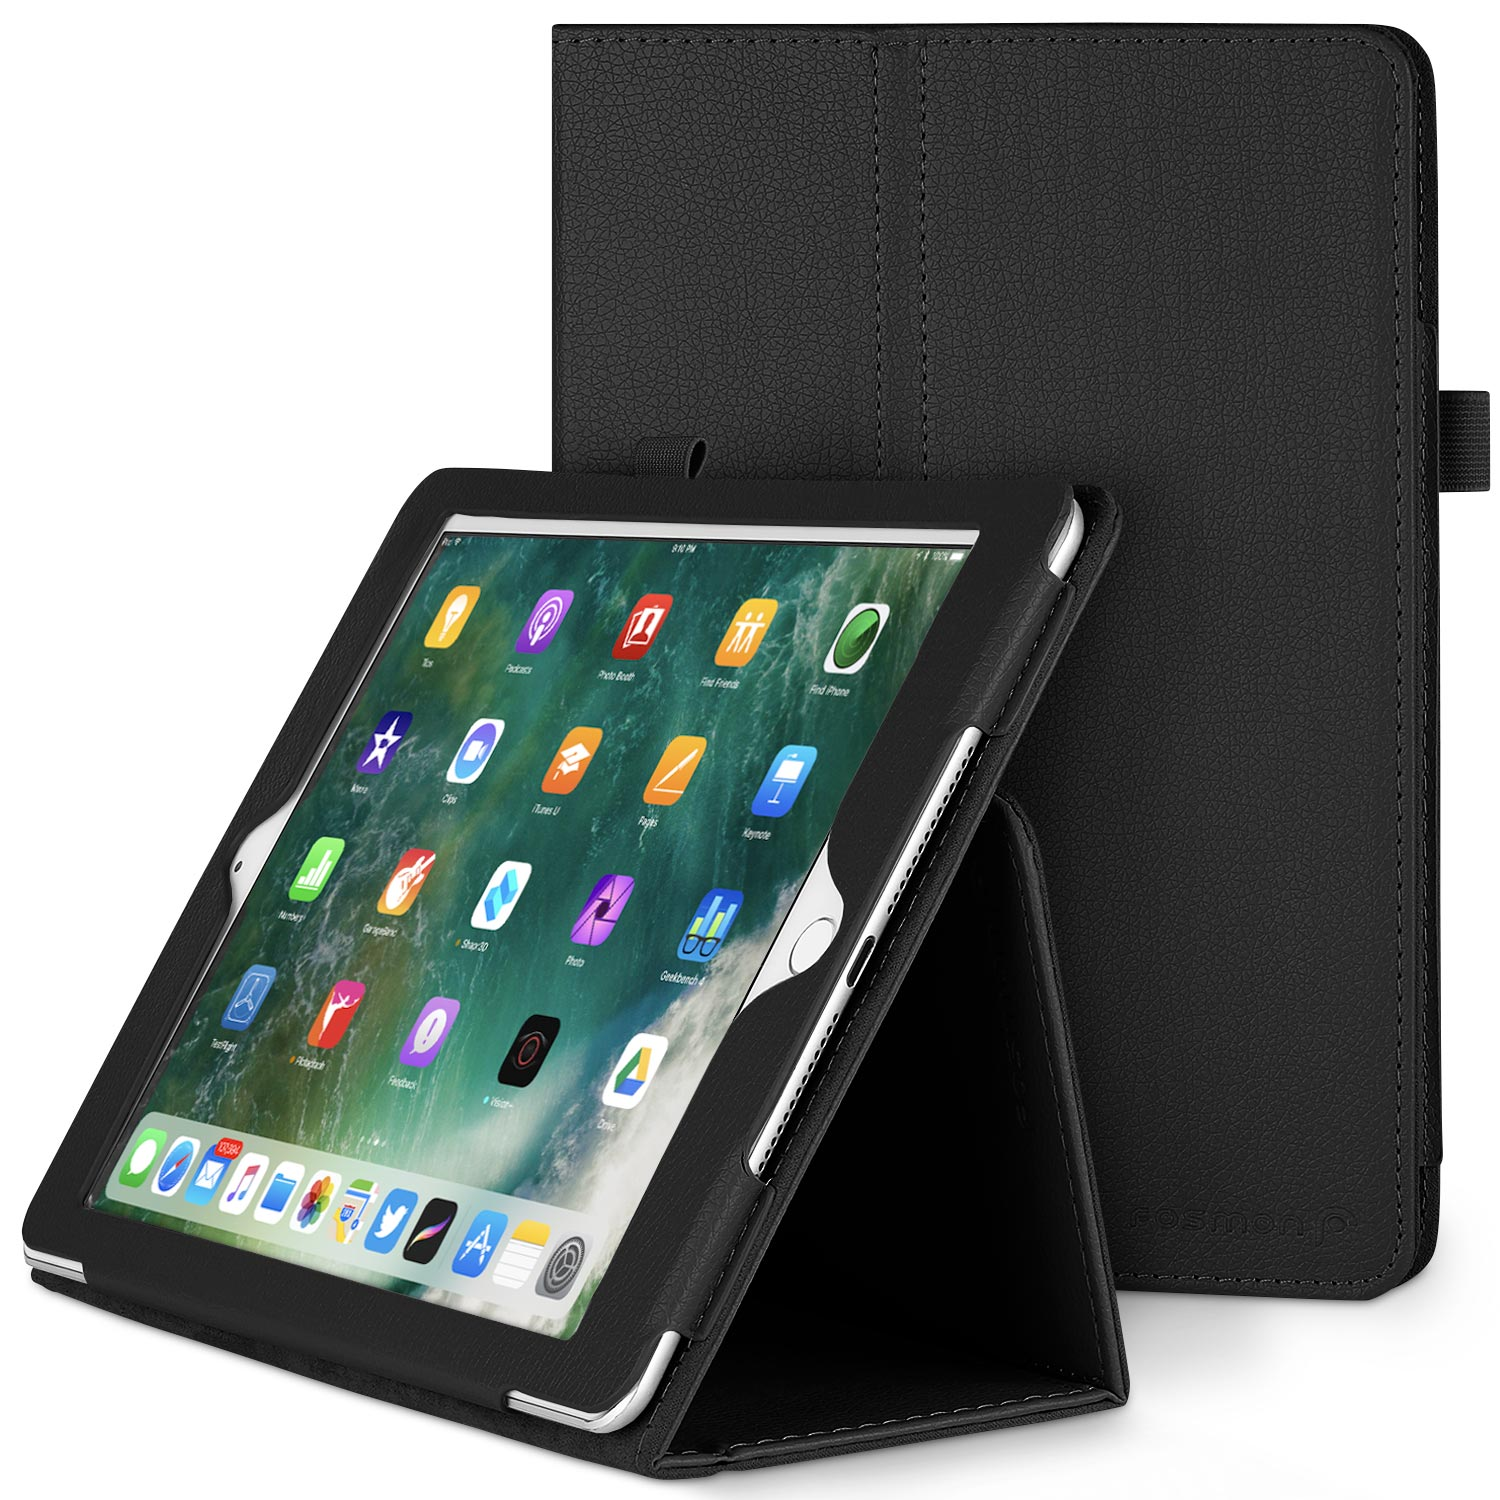 Fosmon OPUS Leather Folio Stand Case Cover for Apple iPad Air 2 - Black